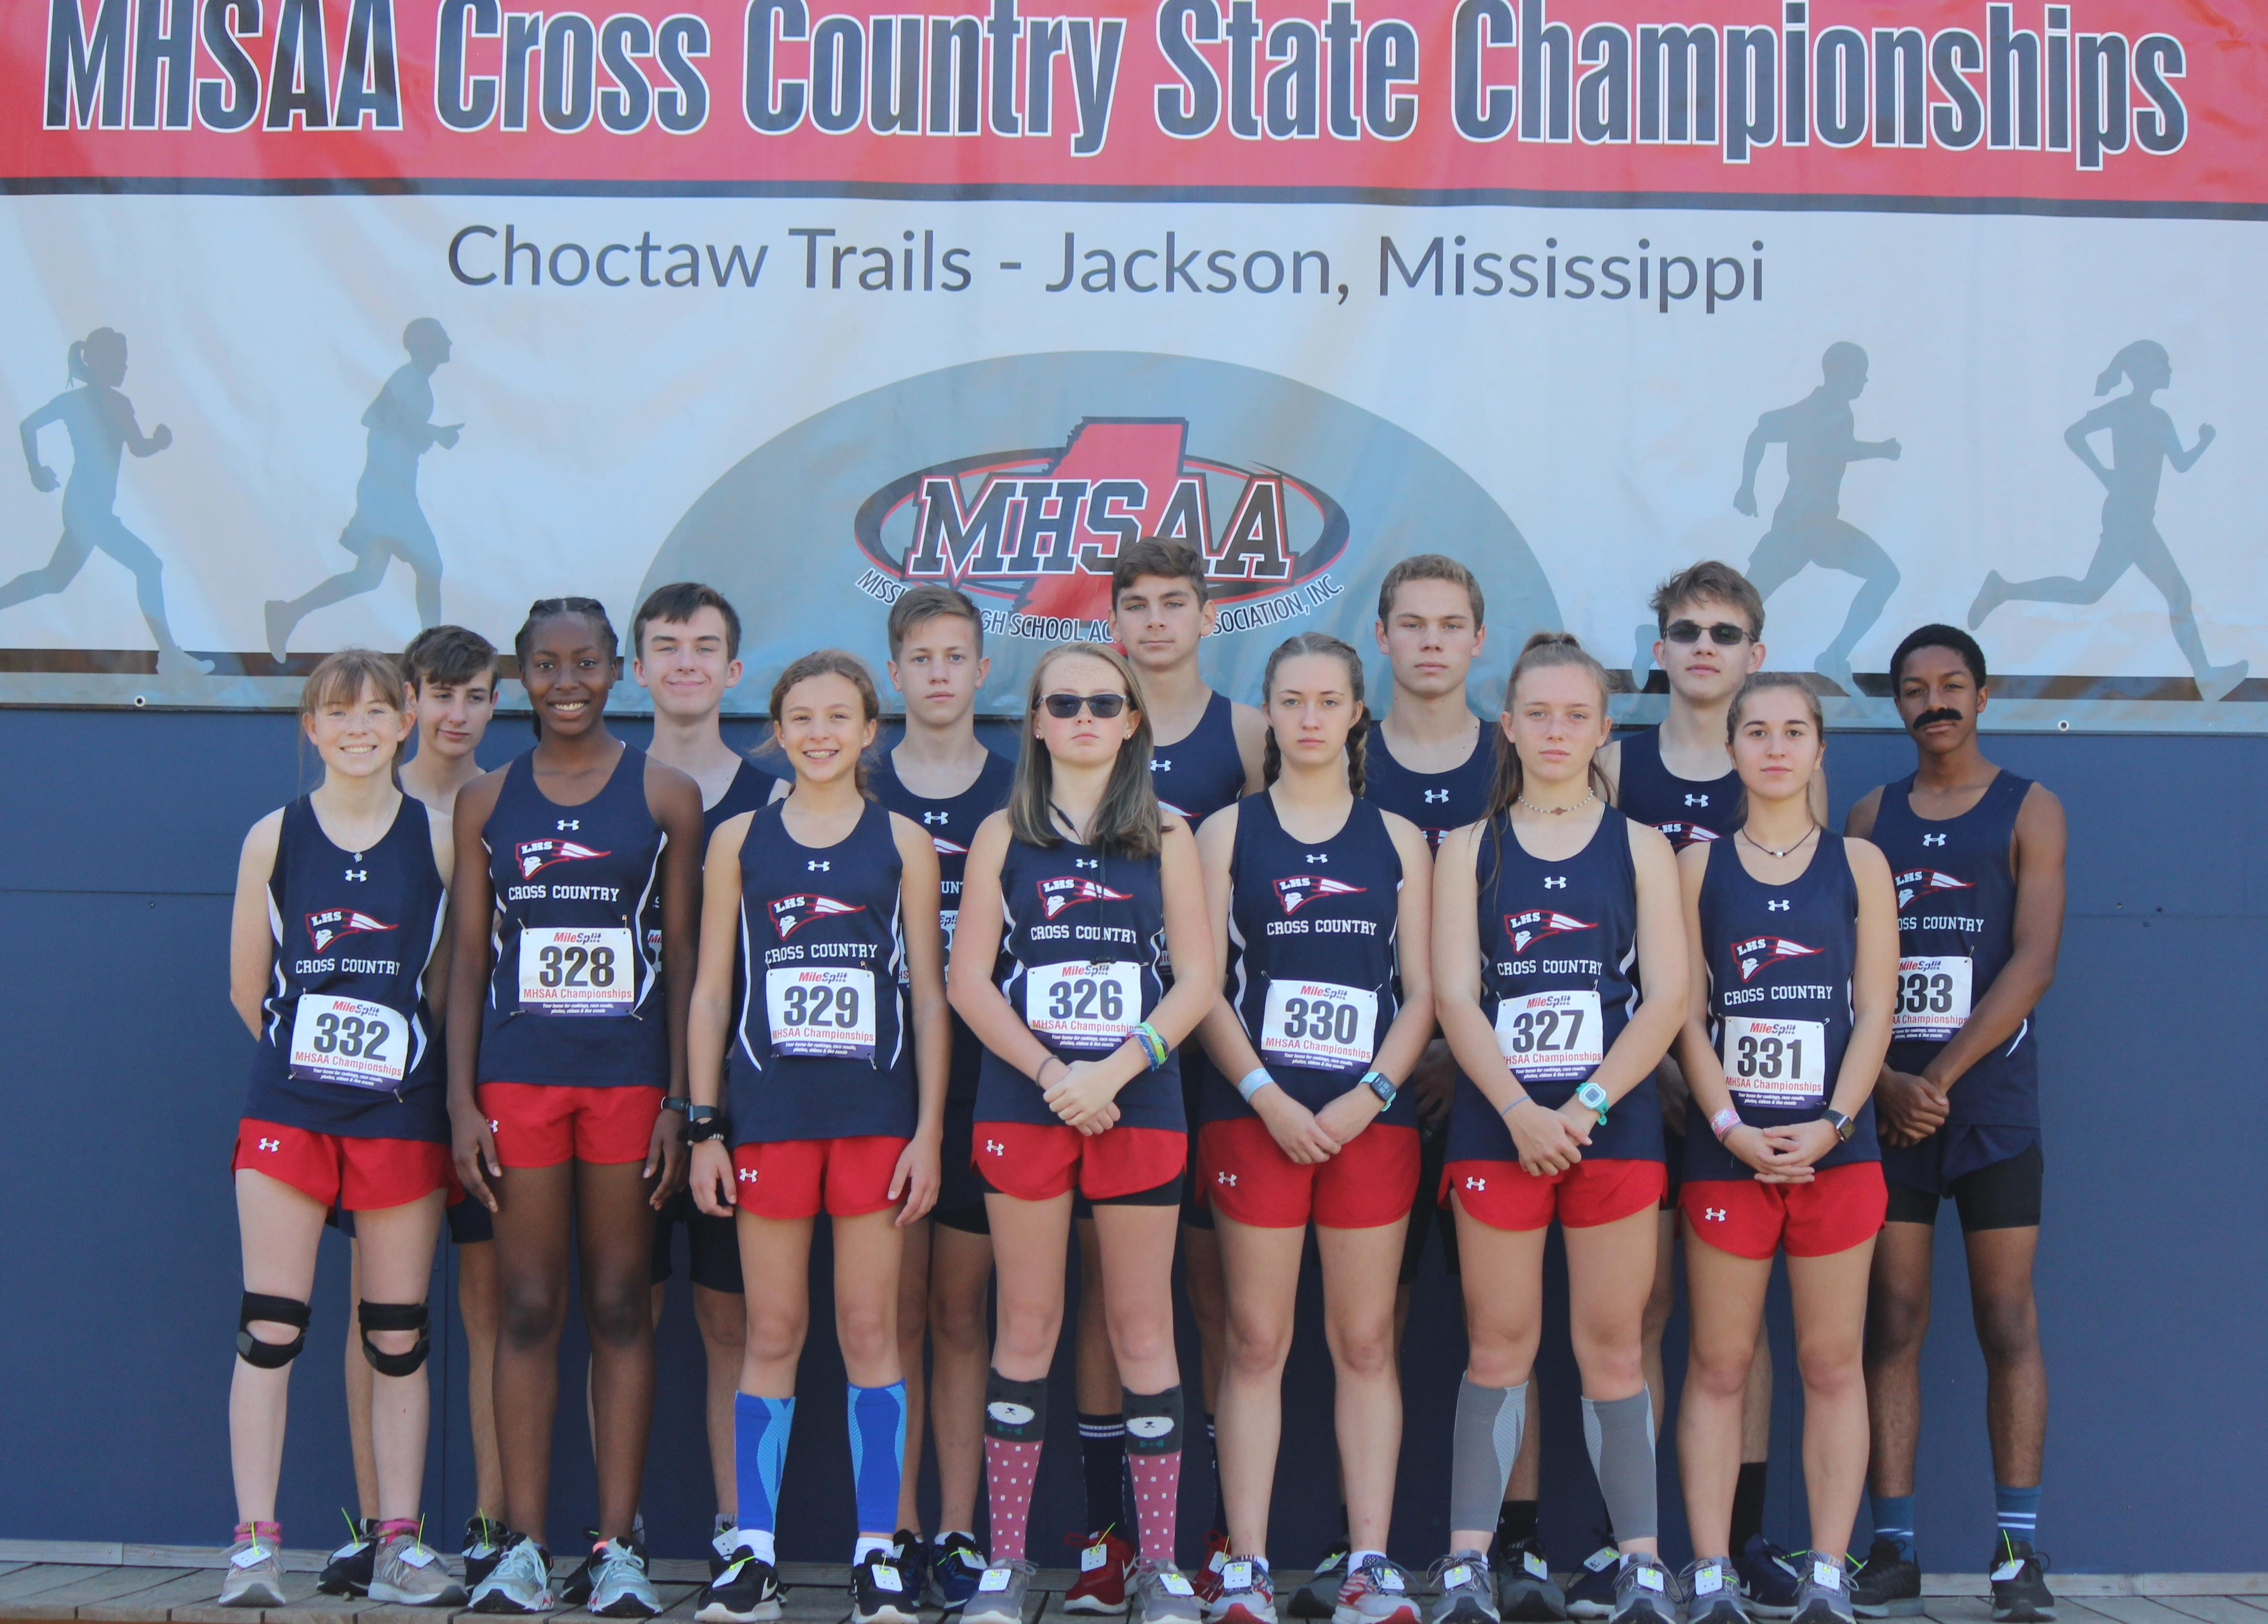 xc 2019 state